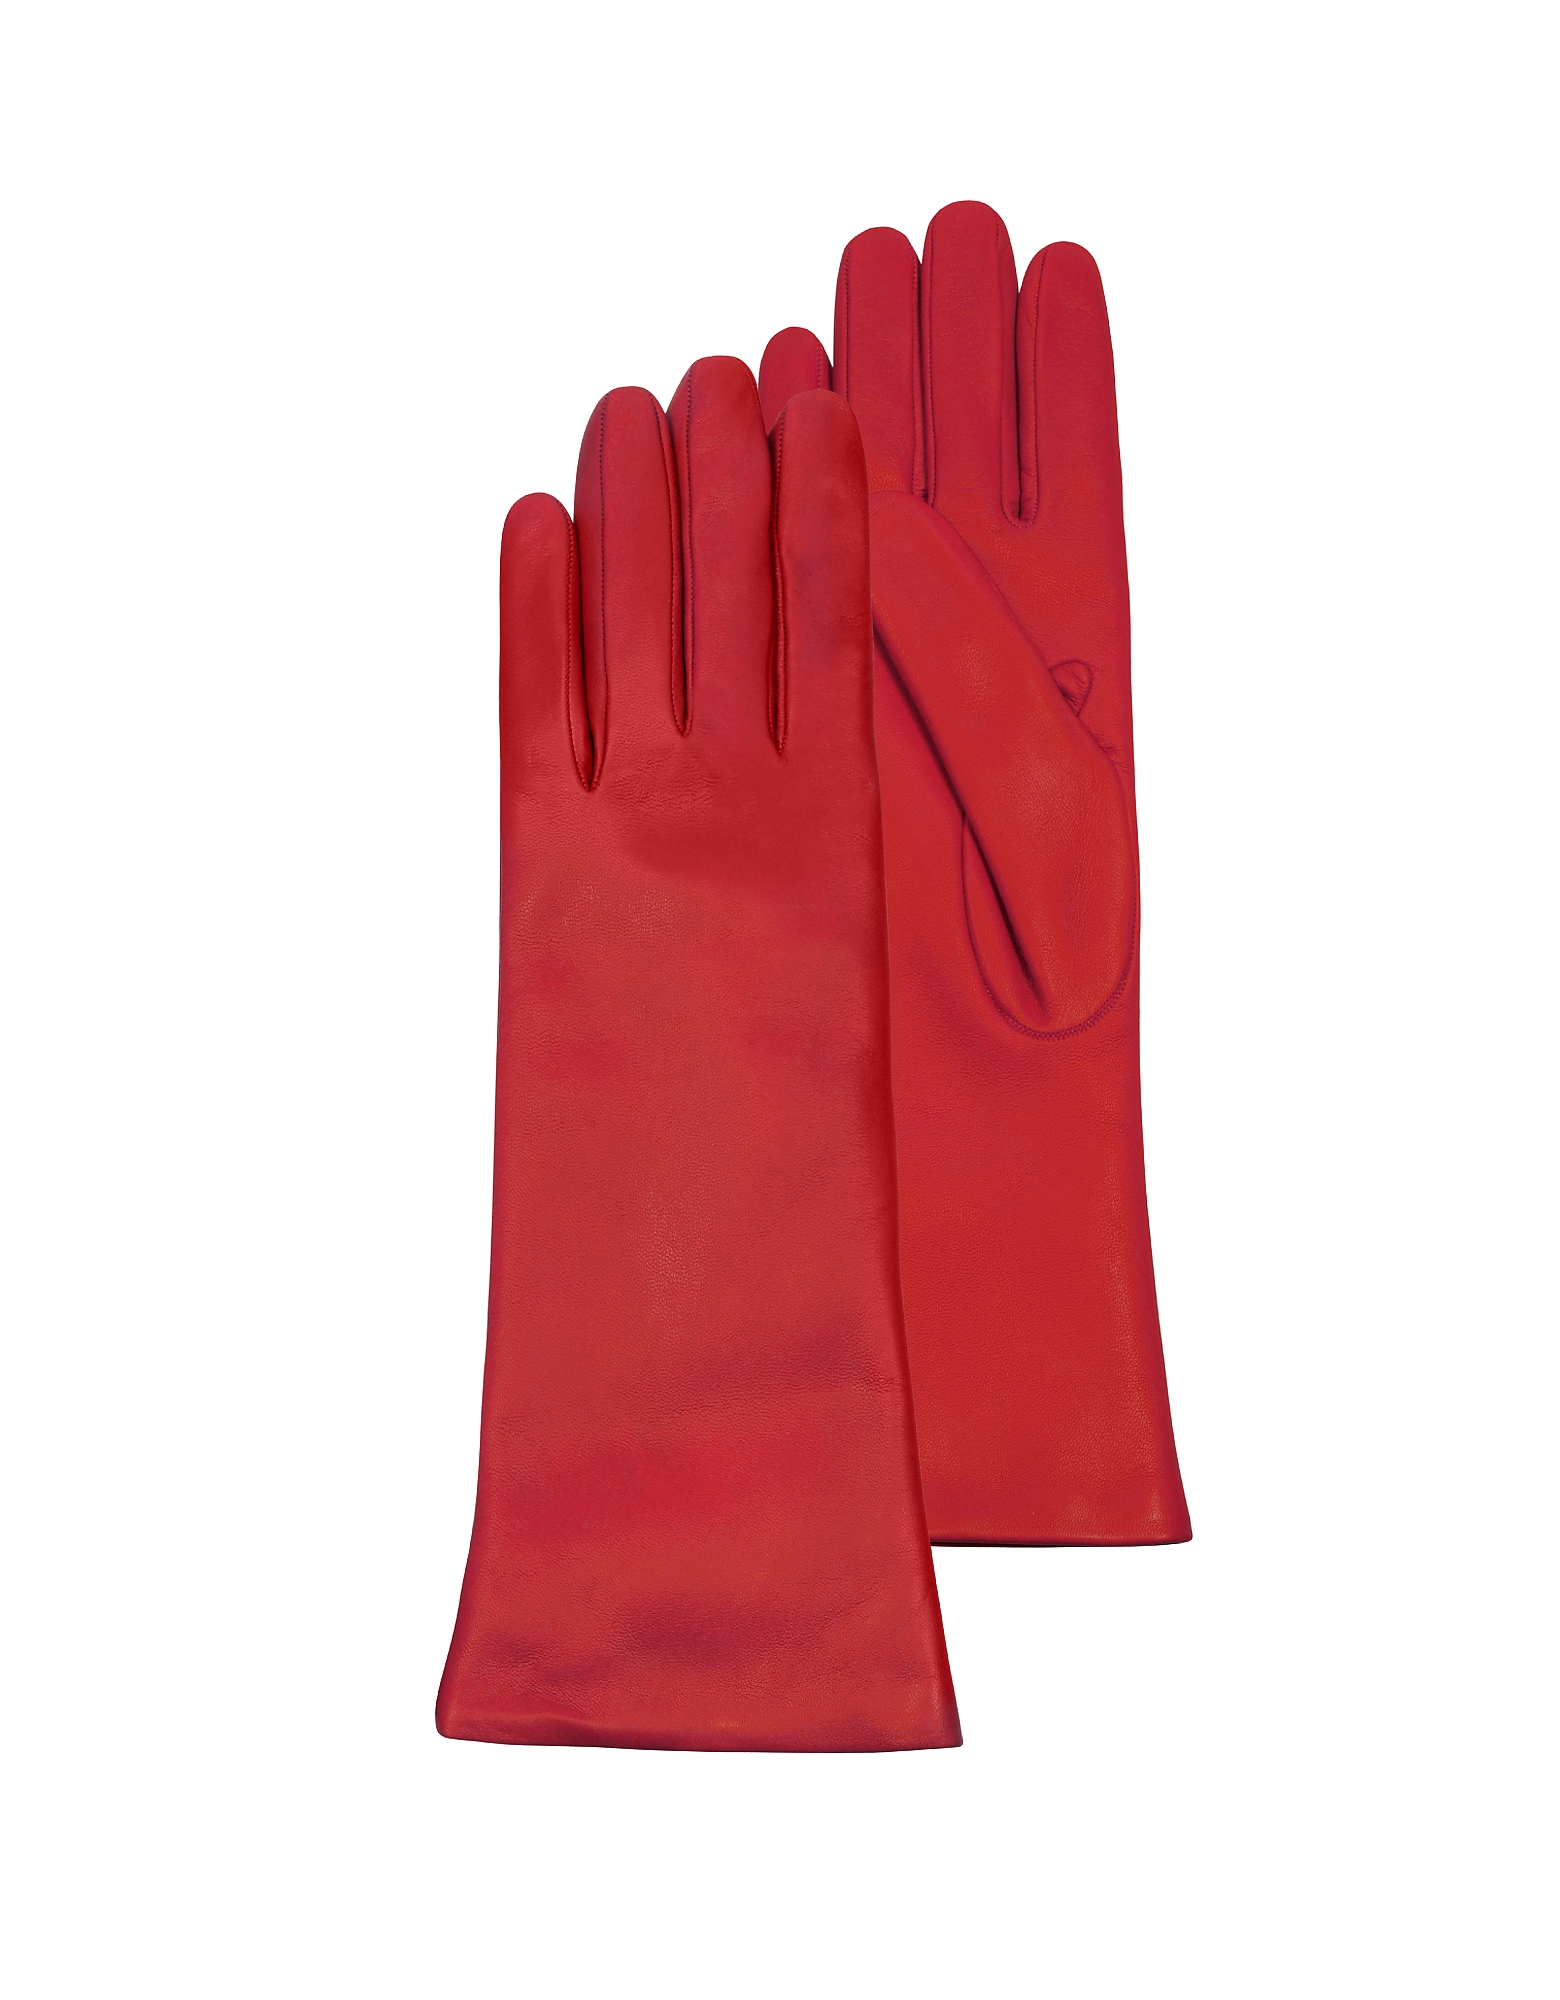 Forzieri Women's Gloves, Red Leather Women's Long Gloves w/Cashmere Lining